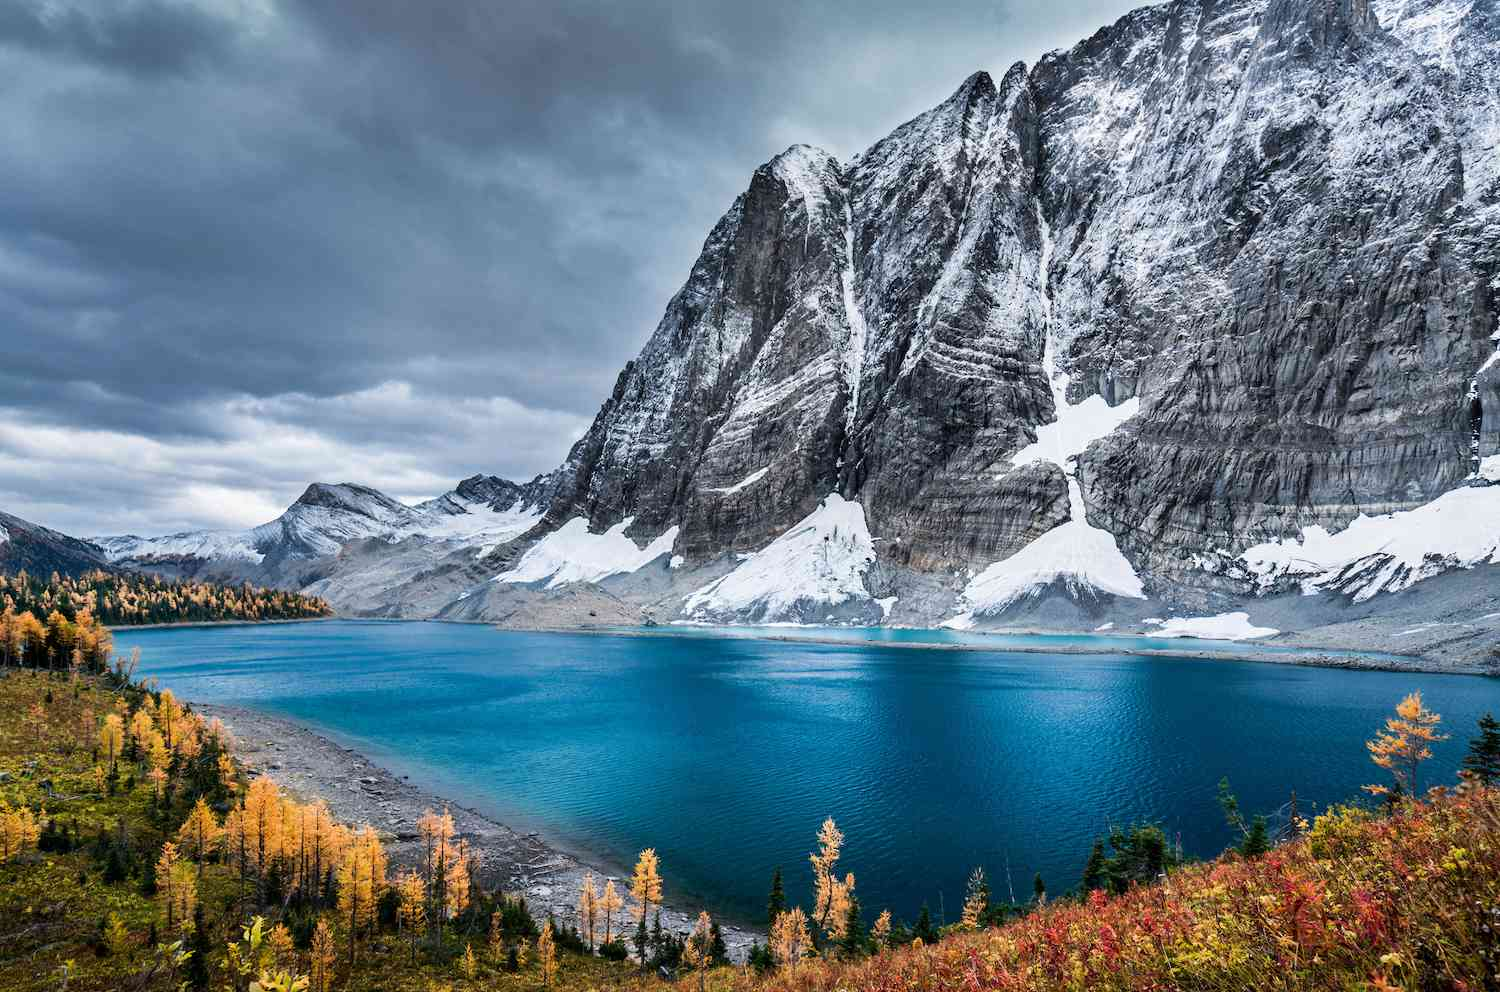 A deep blue lake sits at the base of an icy mountain in Kootenay National Park